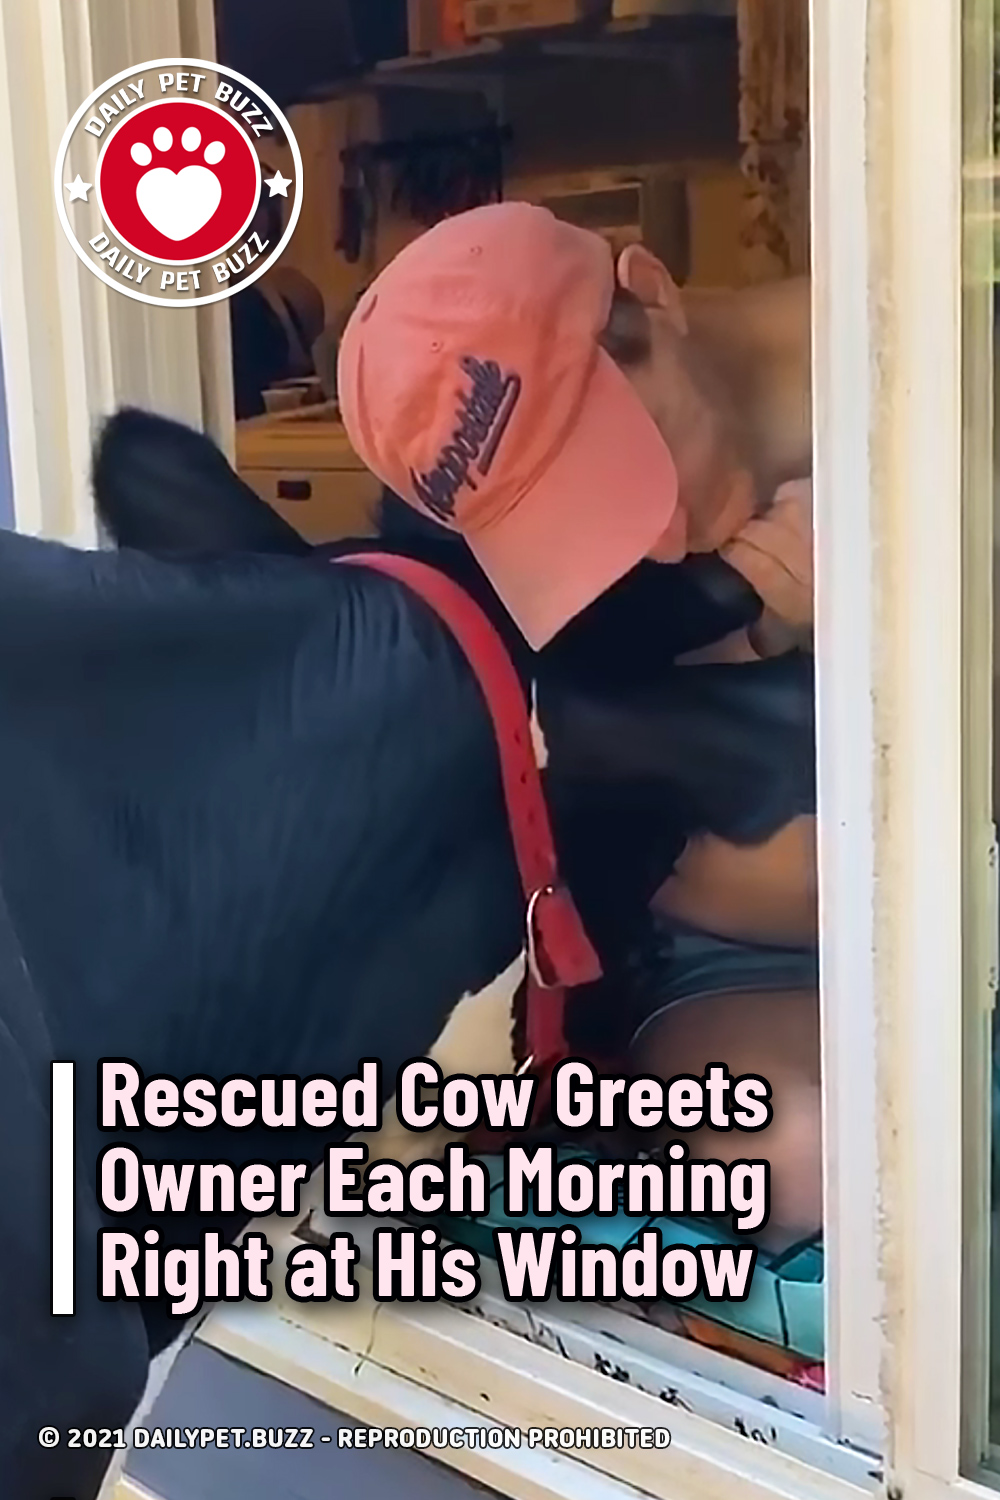 Rescued Cow Greets Owner Each Morning Right at His Window